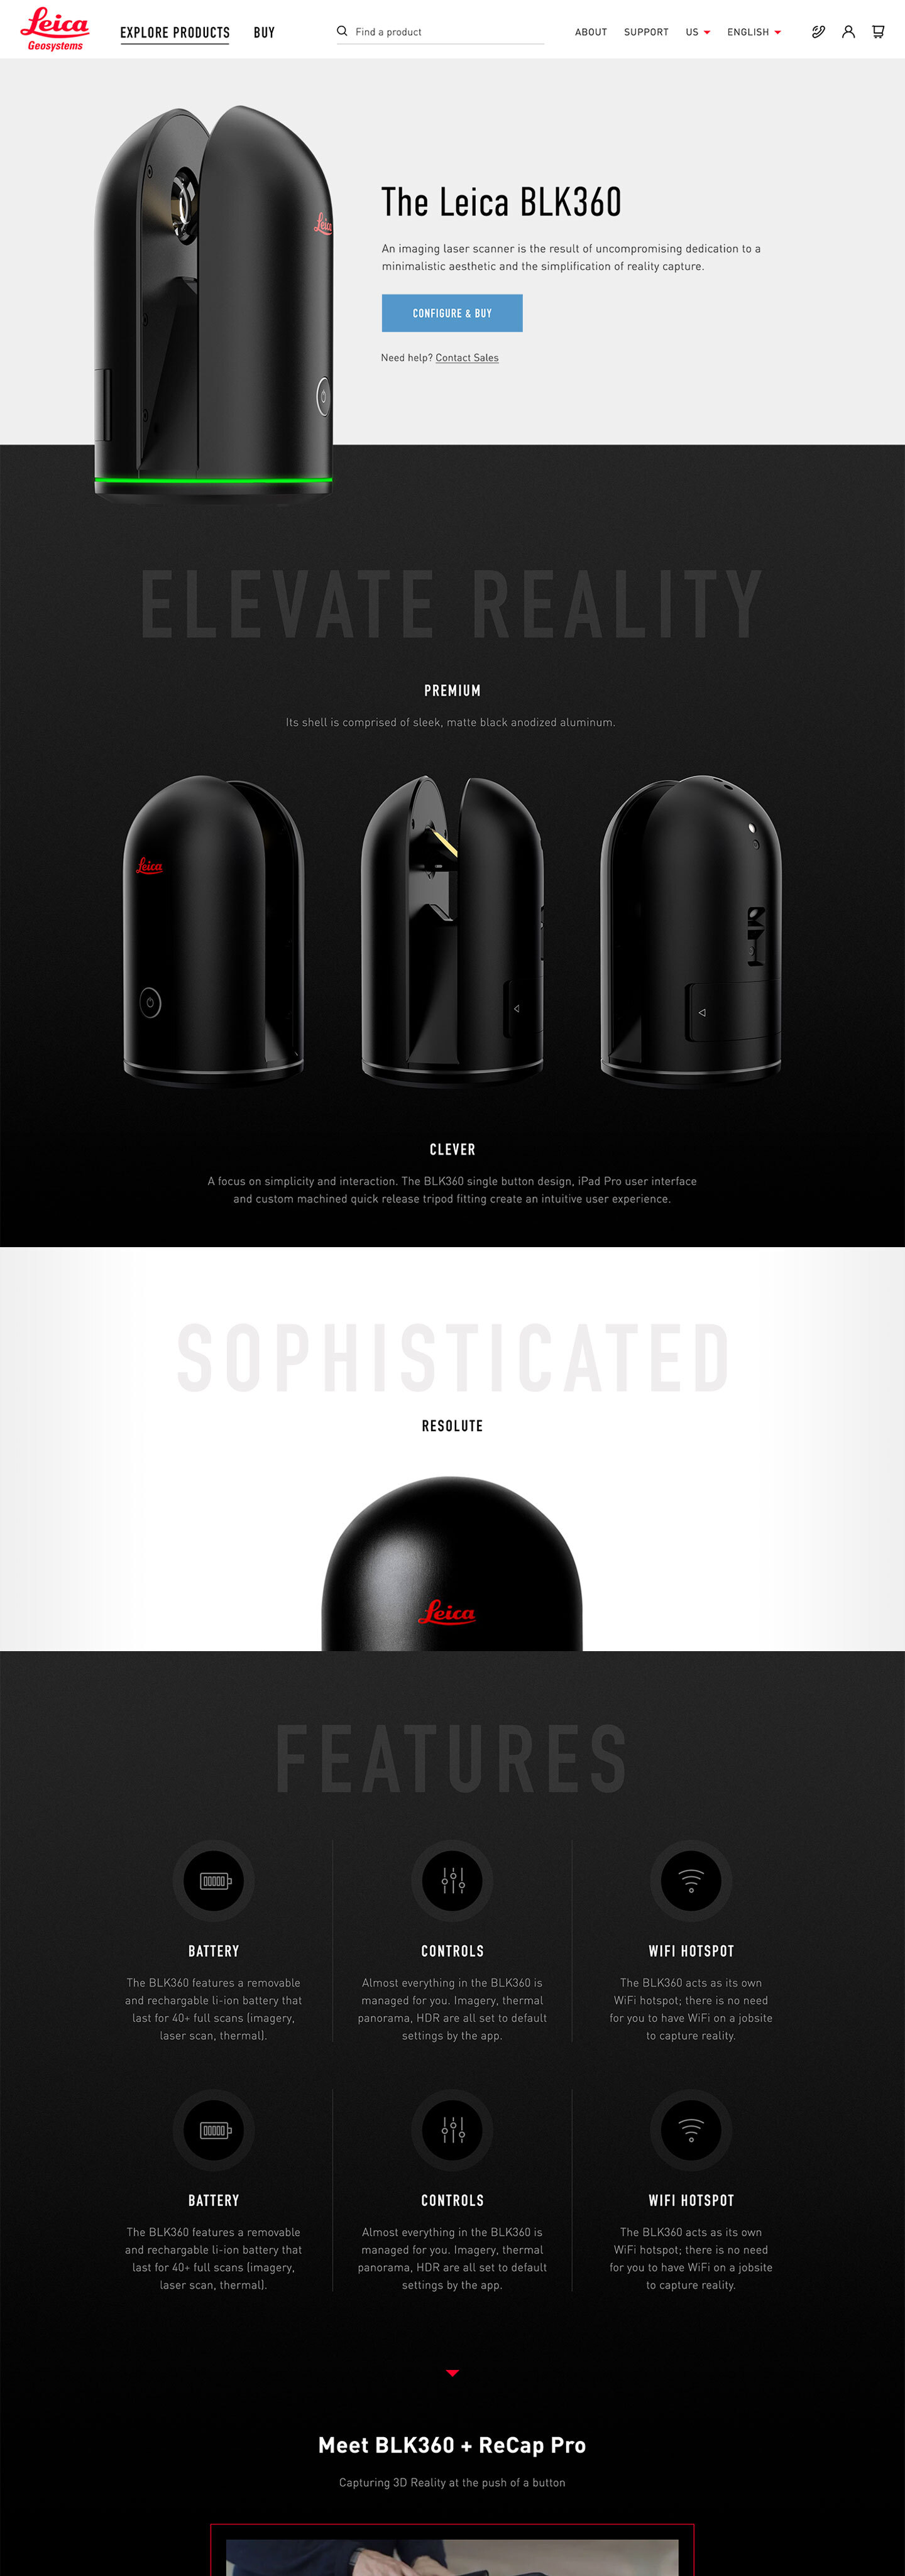 The Leica BLK Explore page design